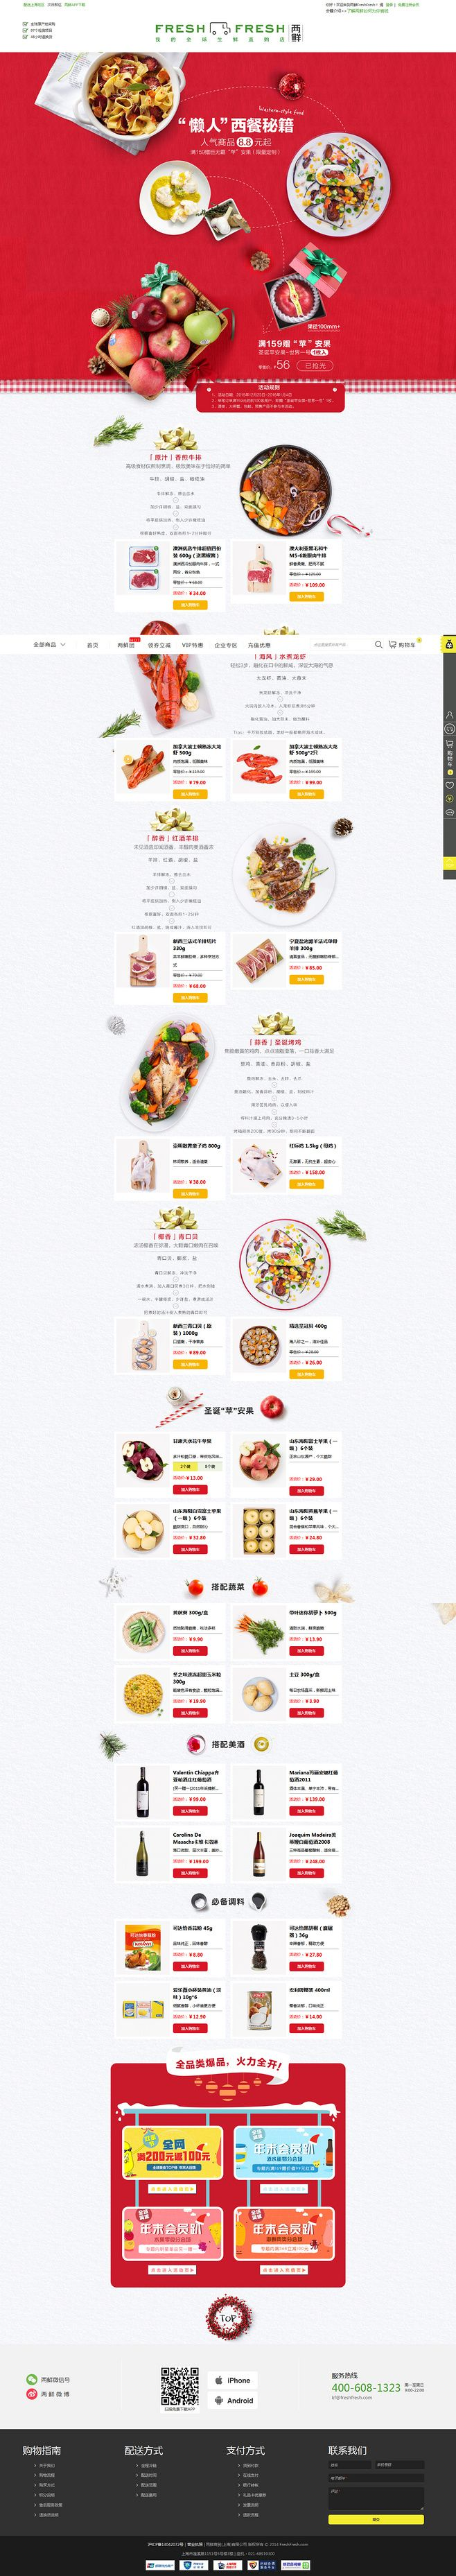 The 97 best Cook, Food images on Pinterest | Advertising, Bag ...